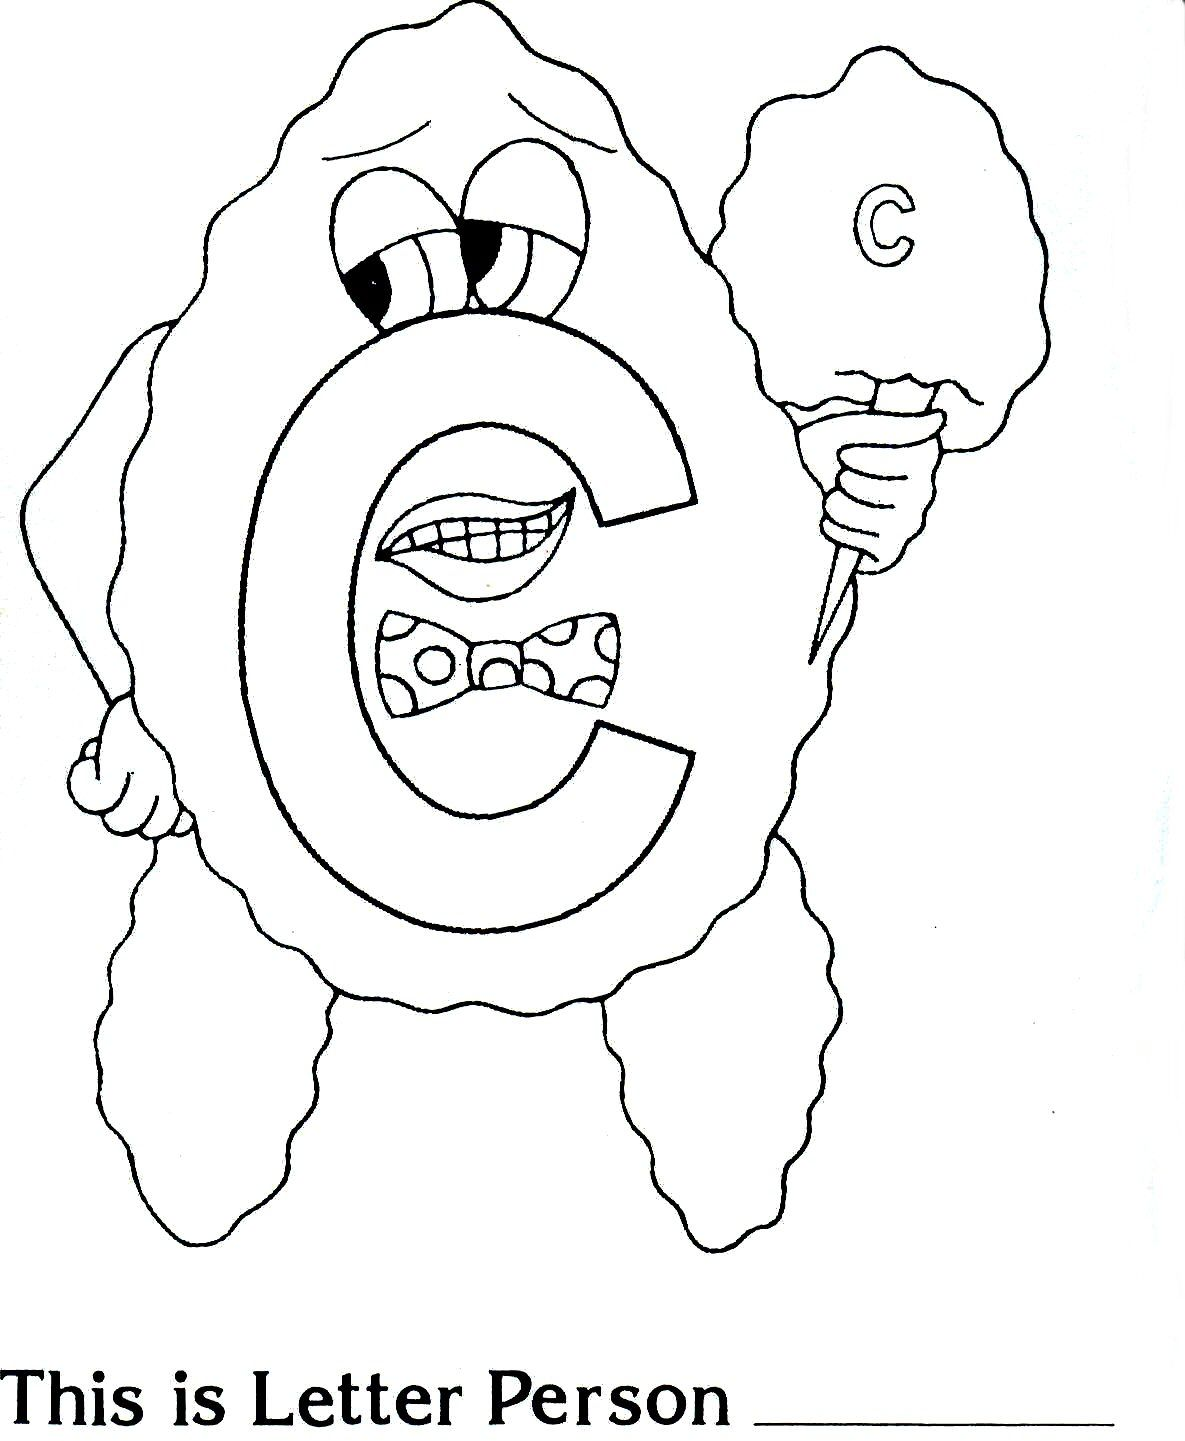 Brilliant Beginnings Preschool Letter Person C Coloring Page